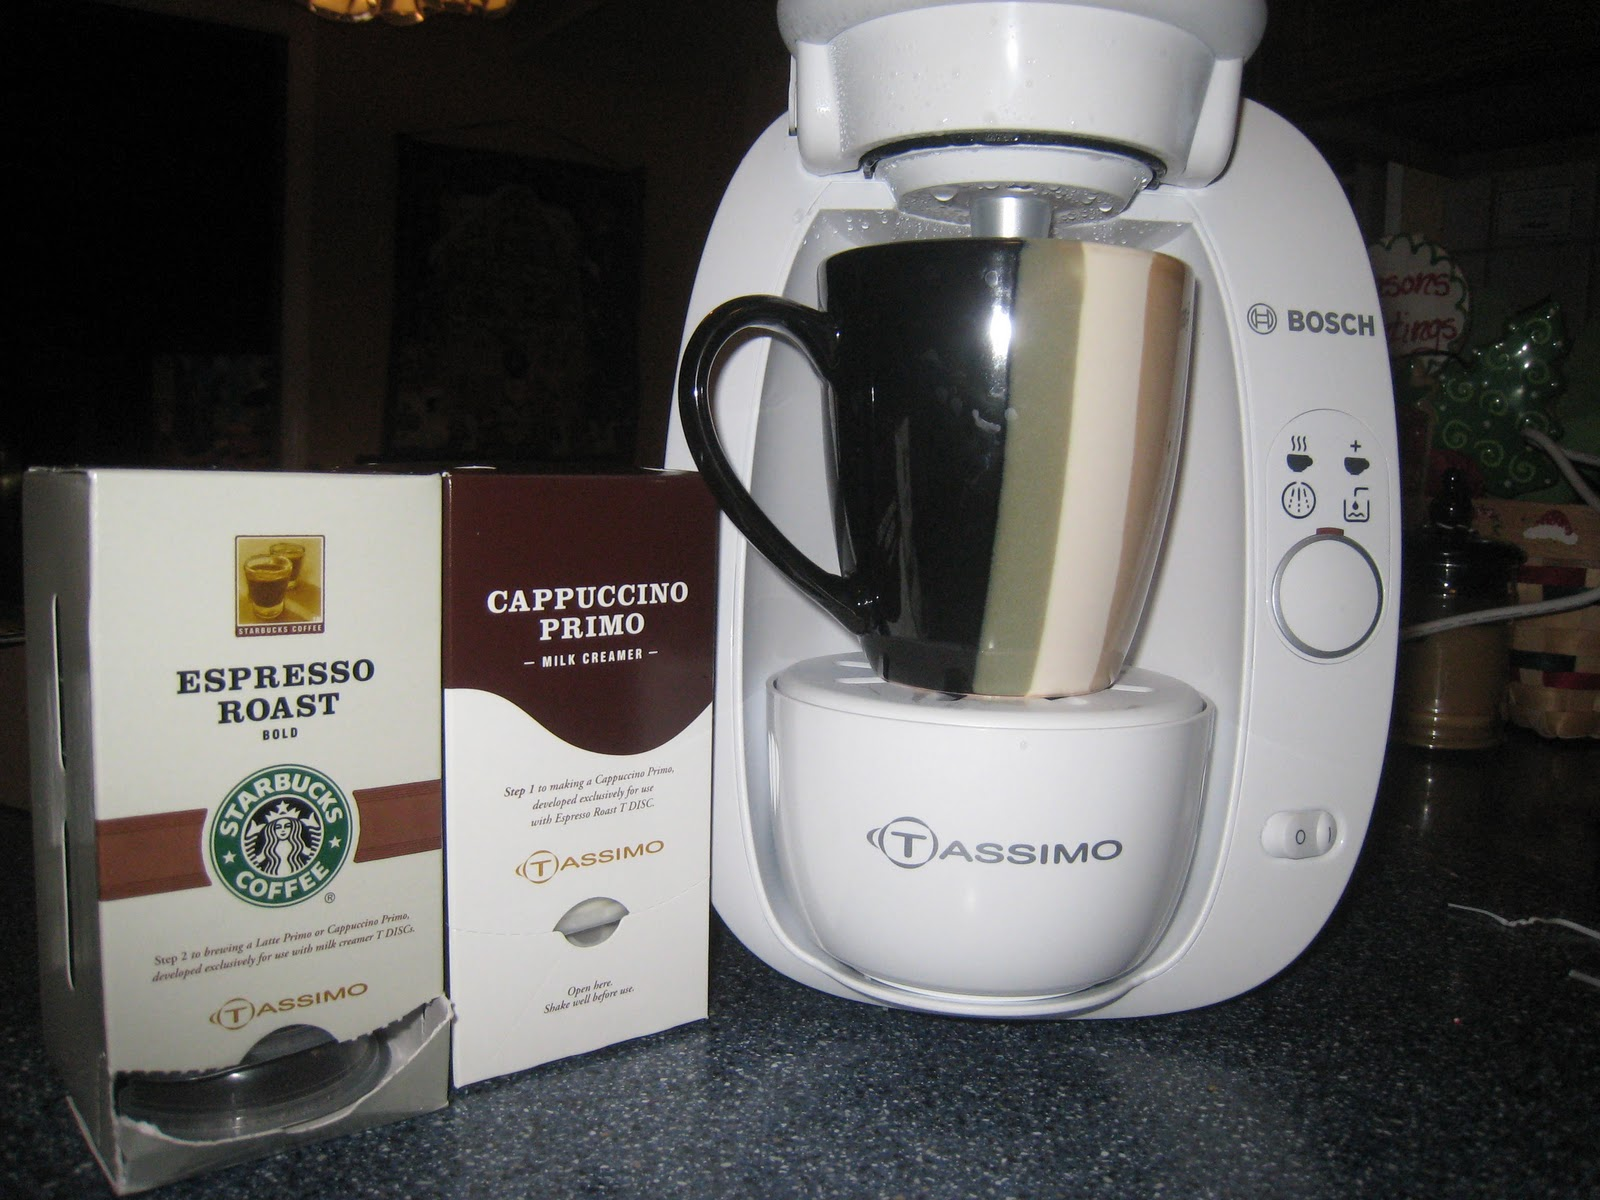 Gevalia Coffee Maker Cleaning Instructions : Momma Drama: Tassimo T20 Brewbot - Review and Giveaway!